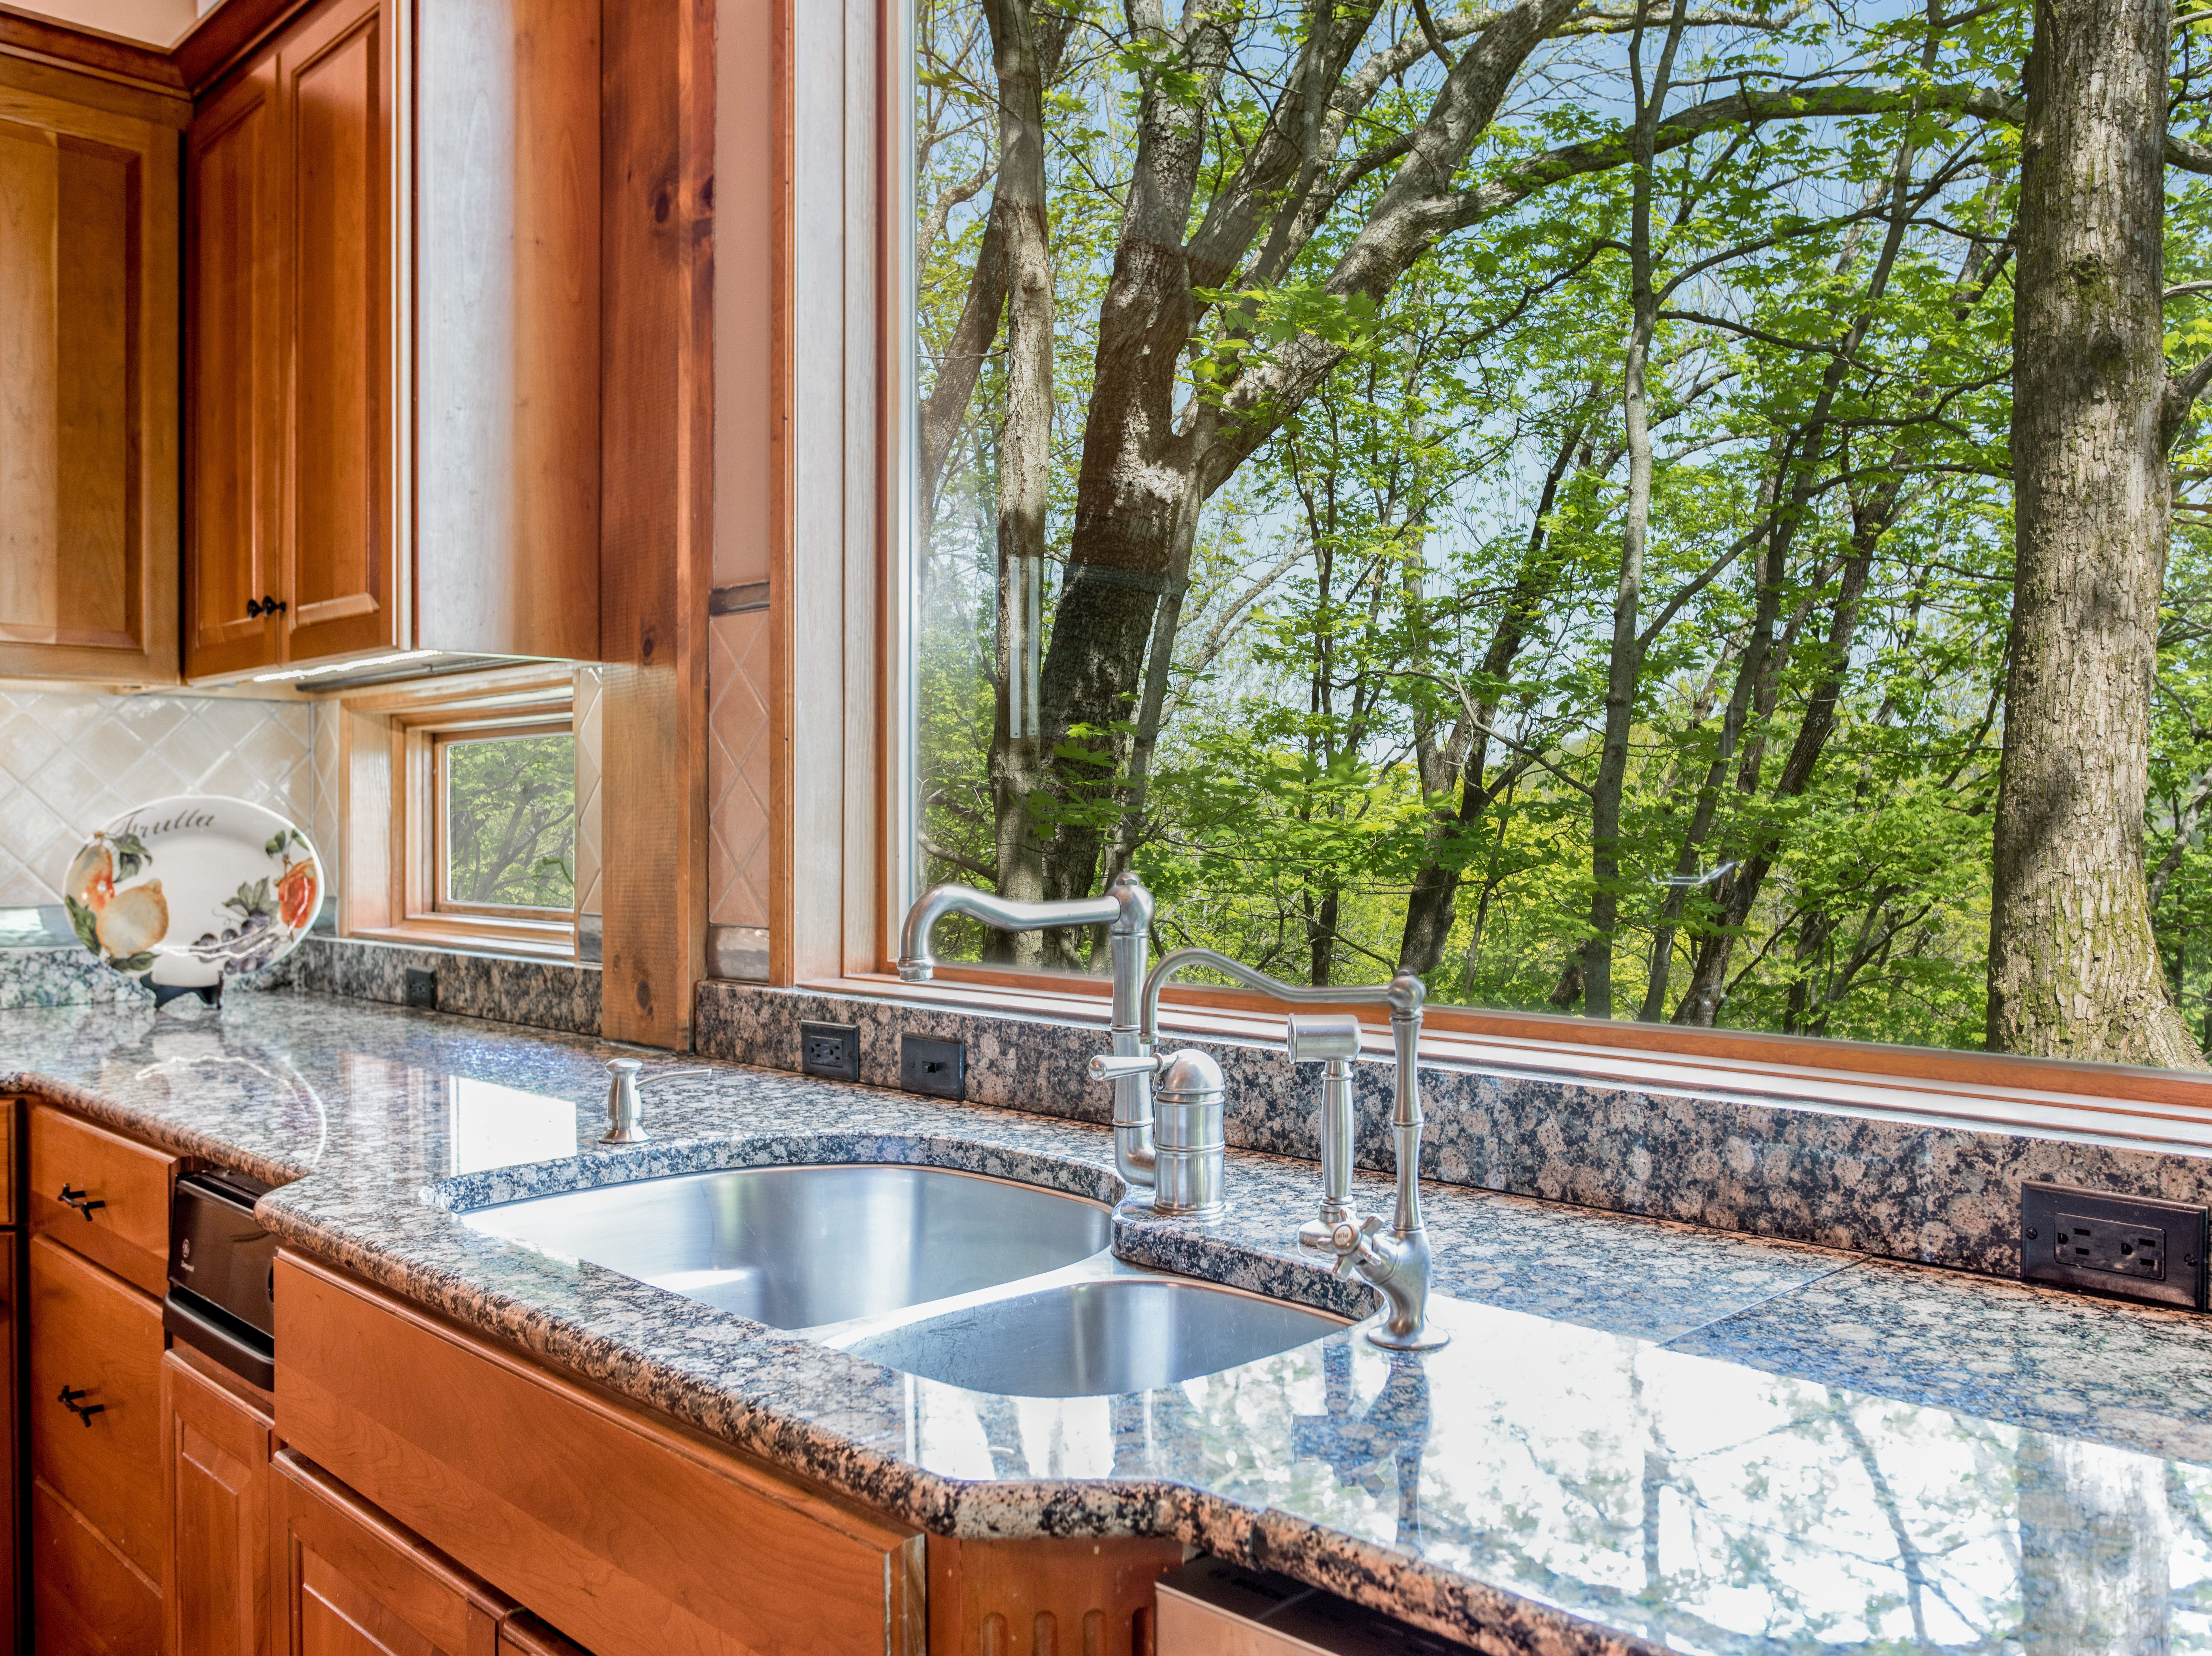 The picture window over the kitchen sink provides beautiful views of the 11 acres of land this home sits on.